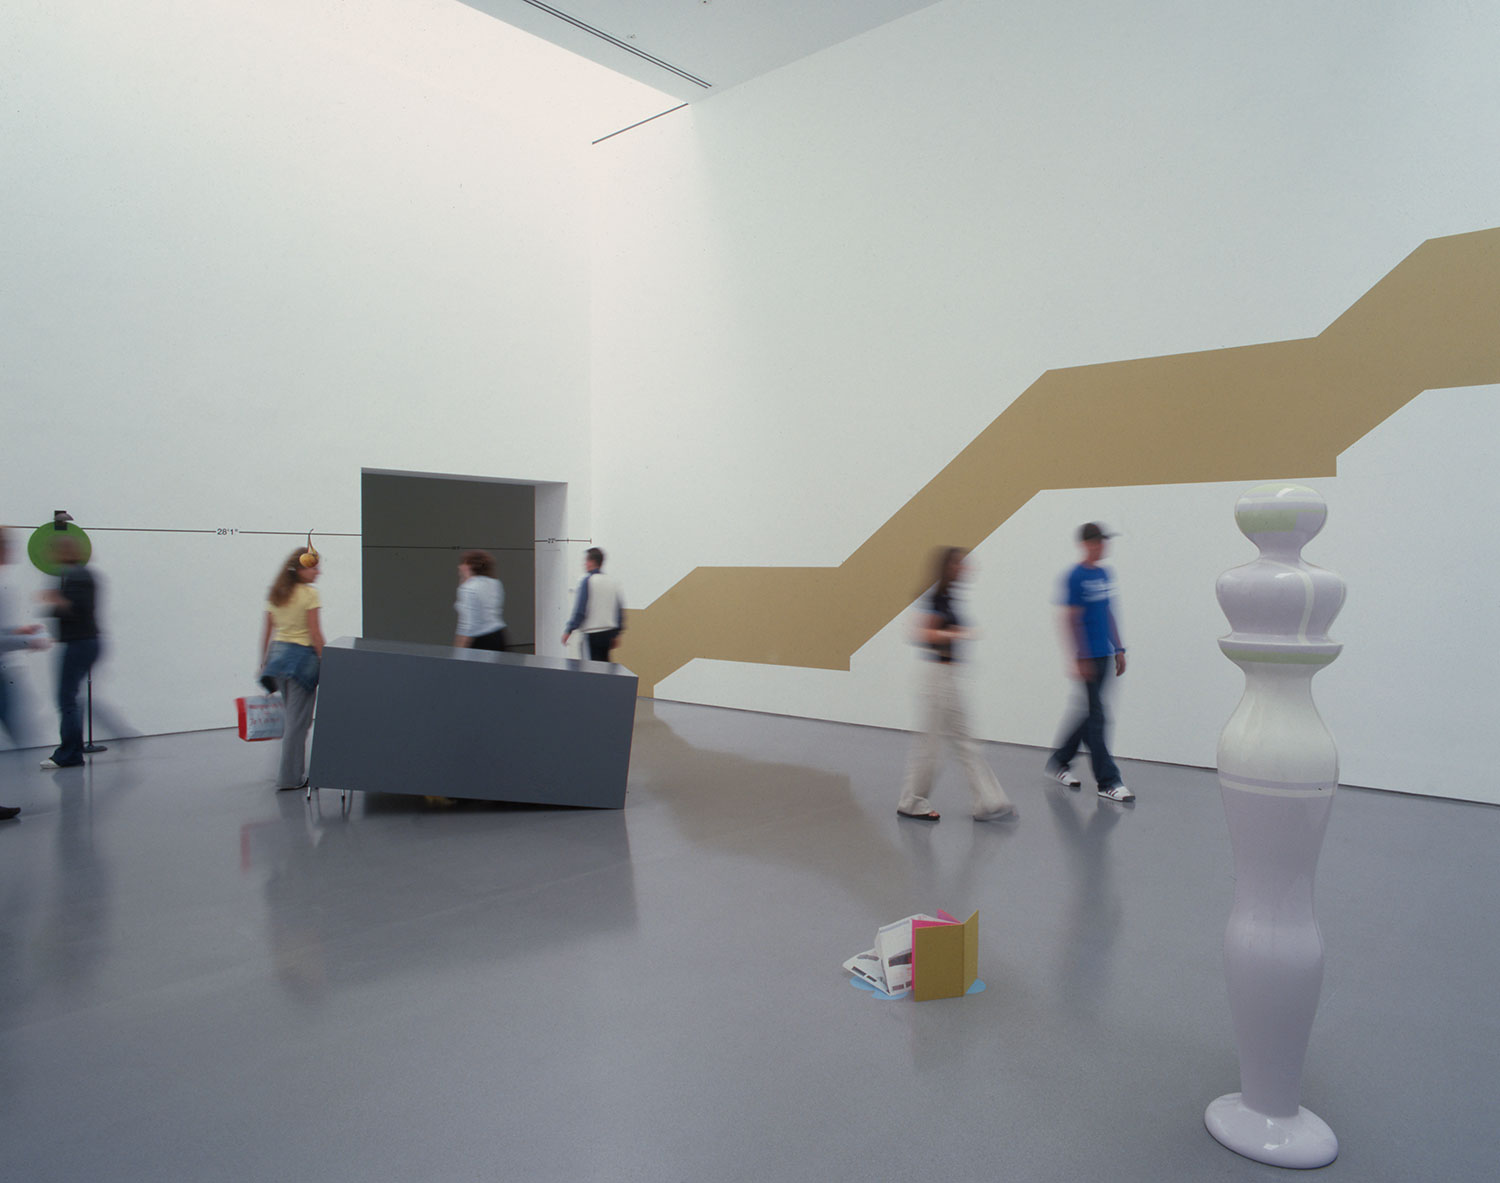 Installation view of The Object Sculpture 2